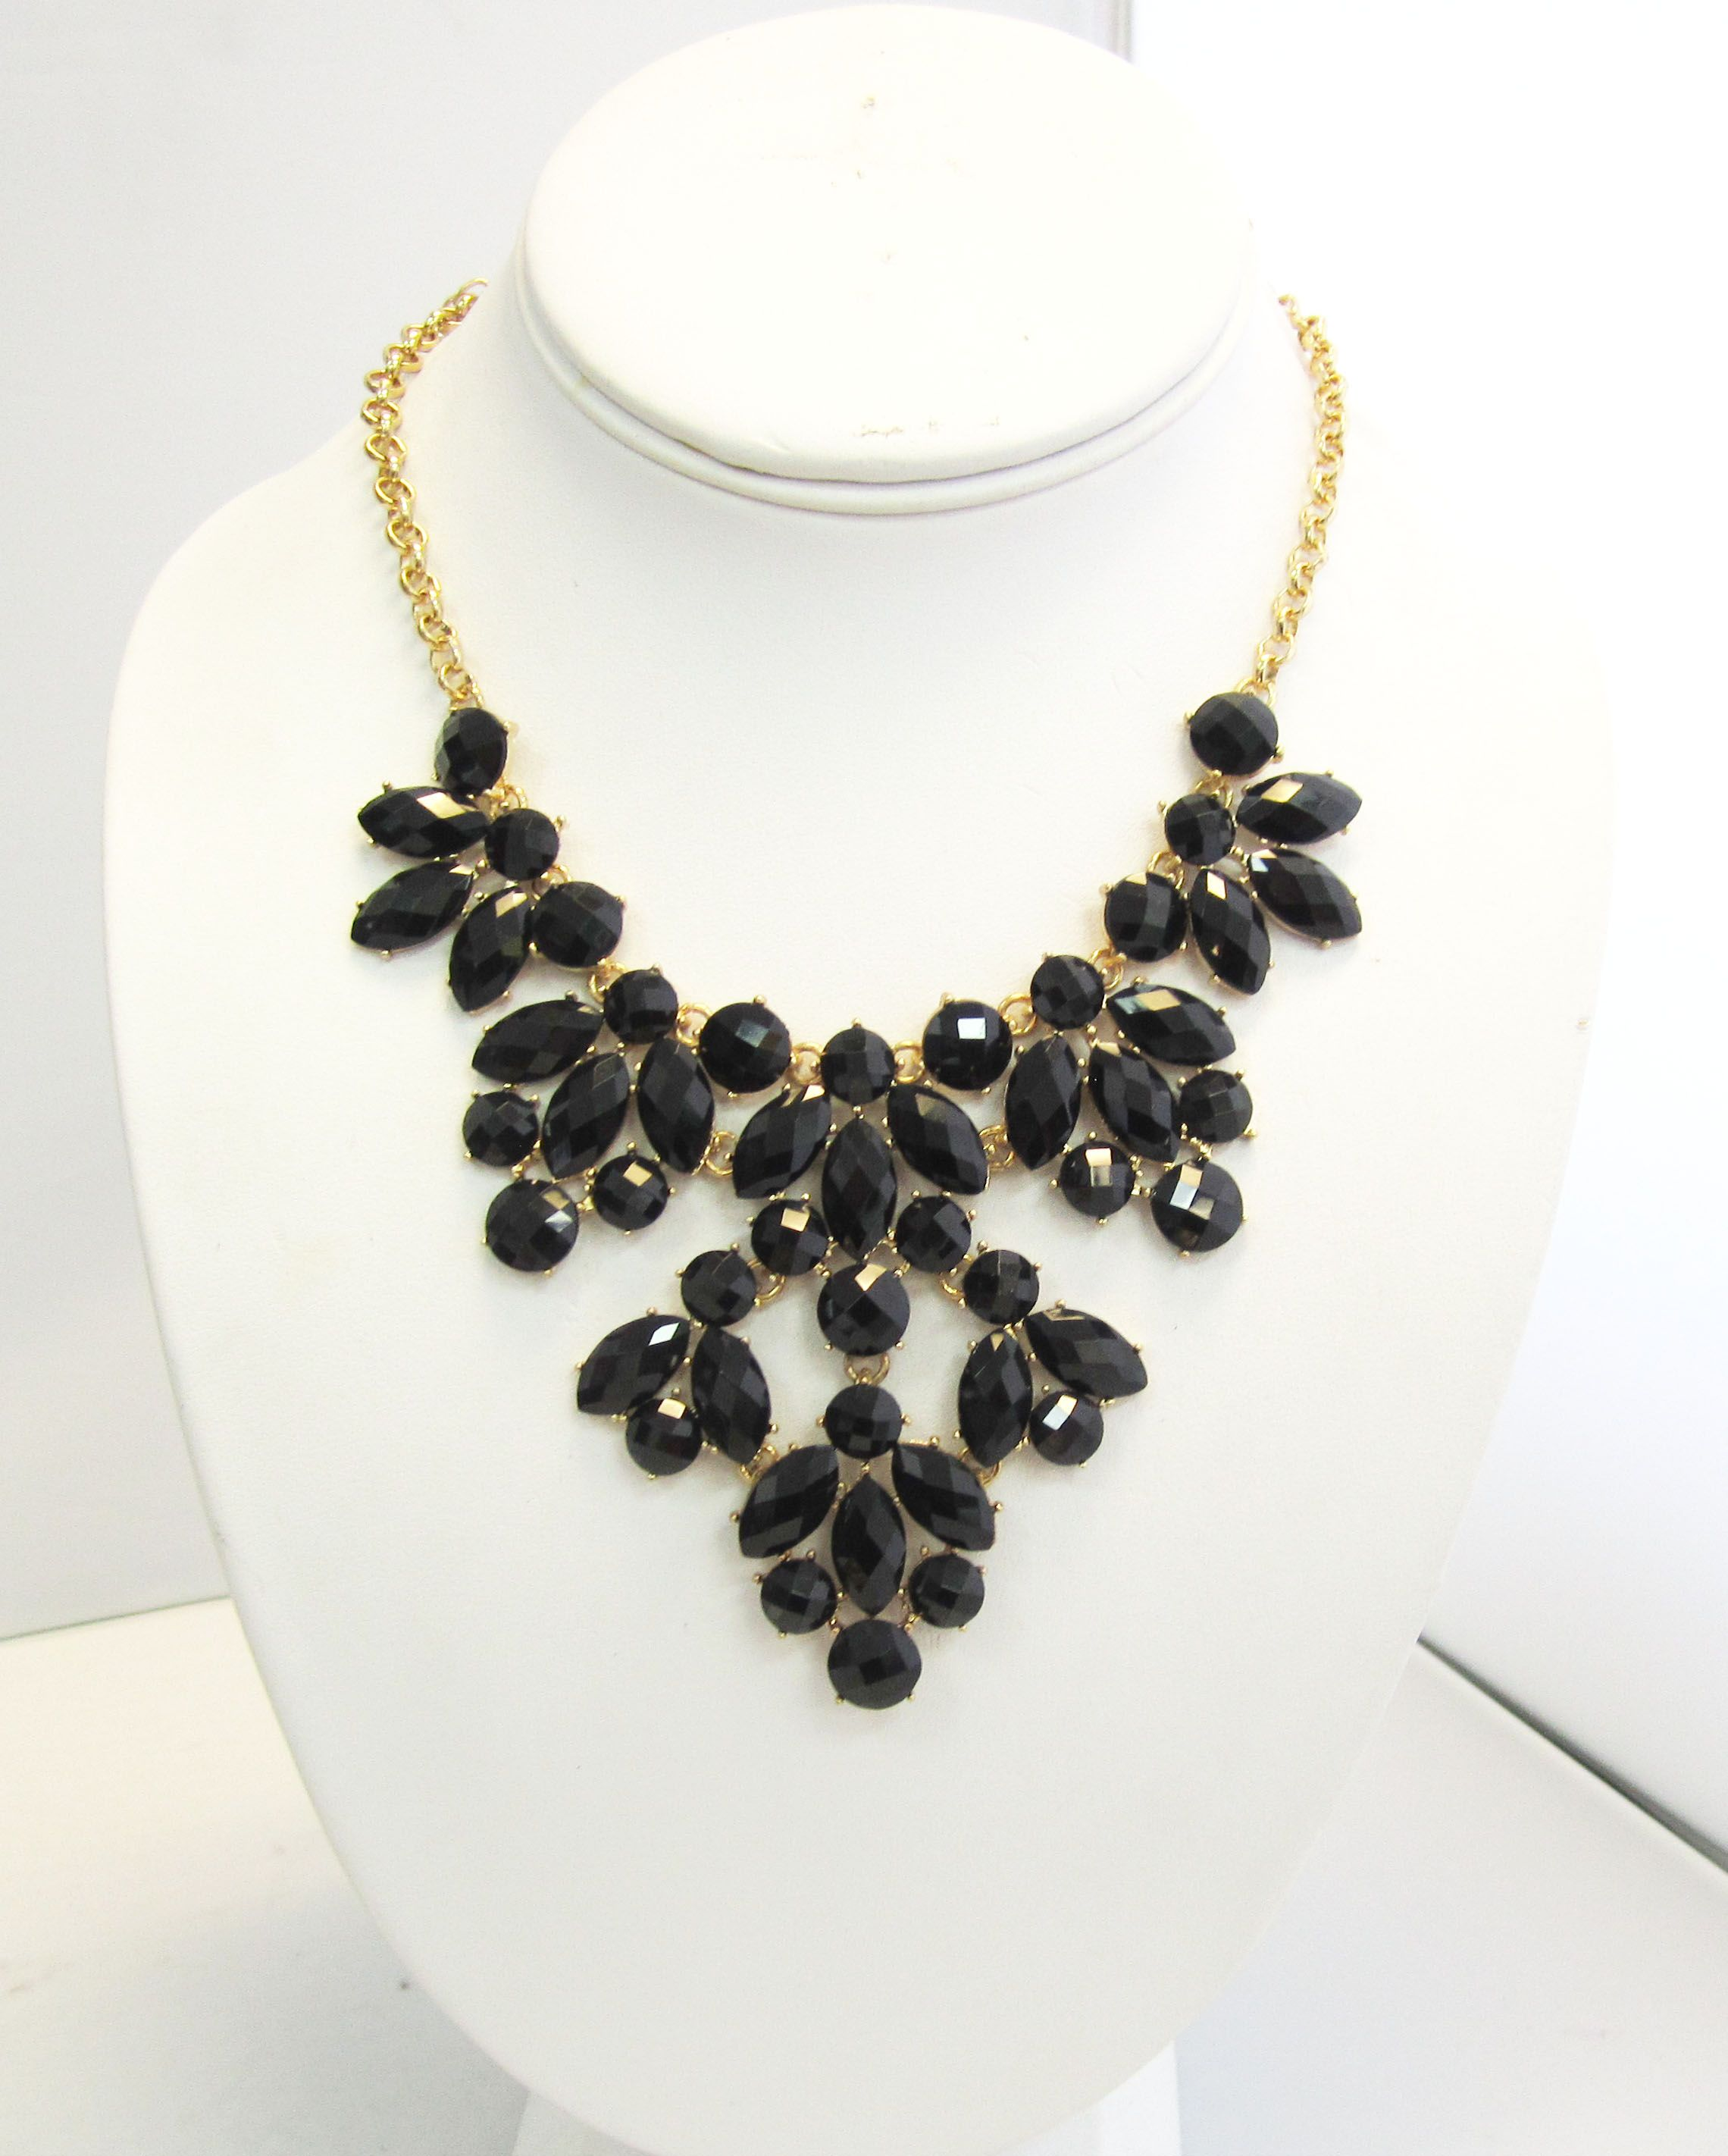 Statement Necklaces - Collares Cortos